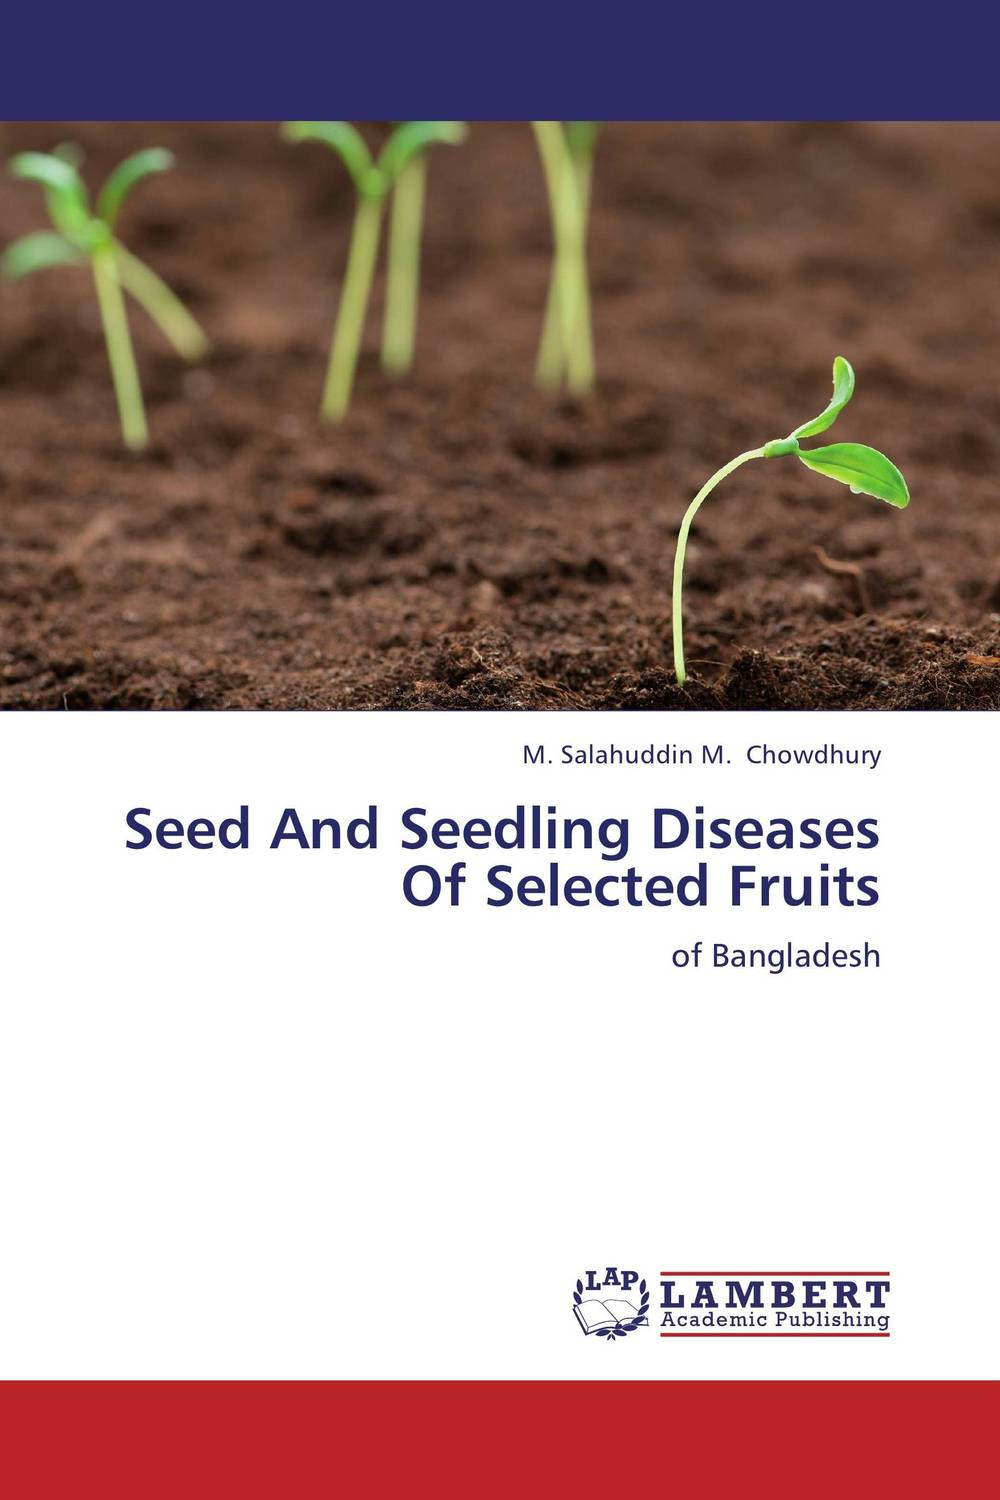 Seed And Seedling Diseases Of Selected Fruits seed dormancy and germination